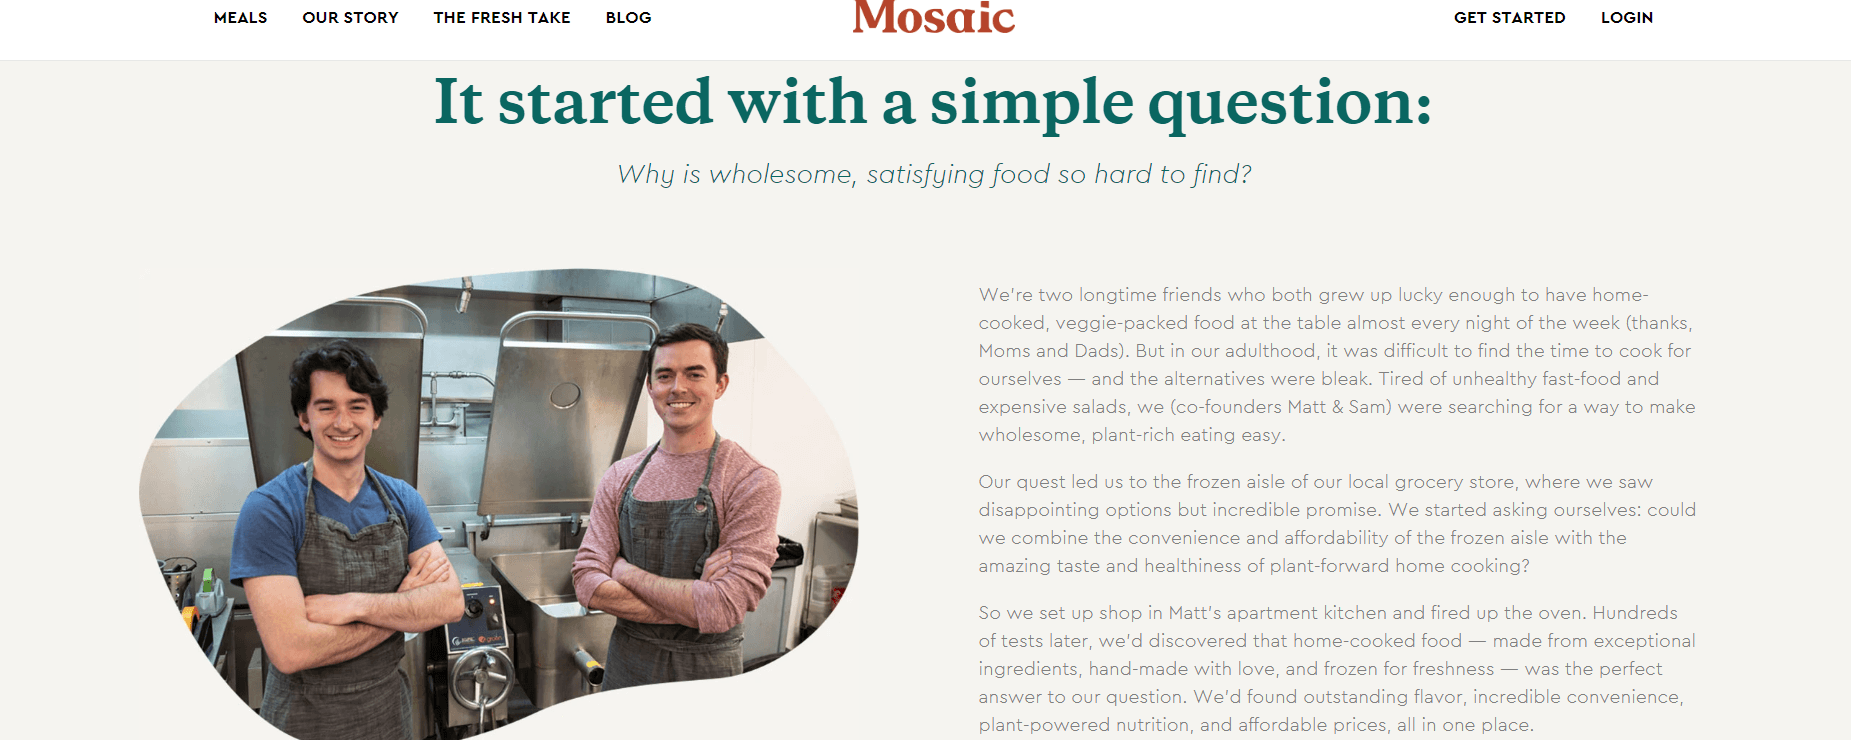 Mosaic Foods Story